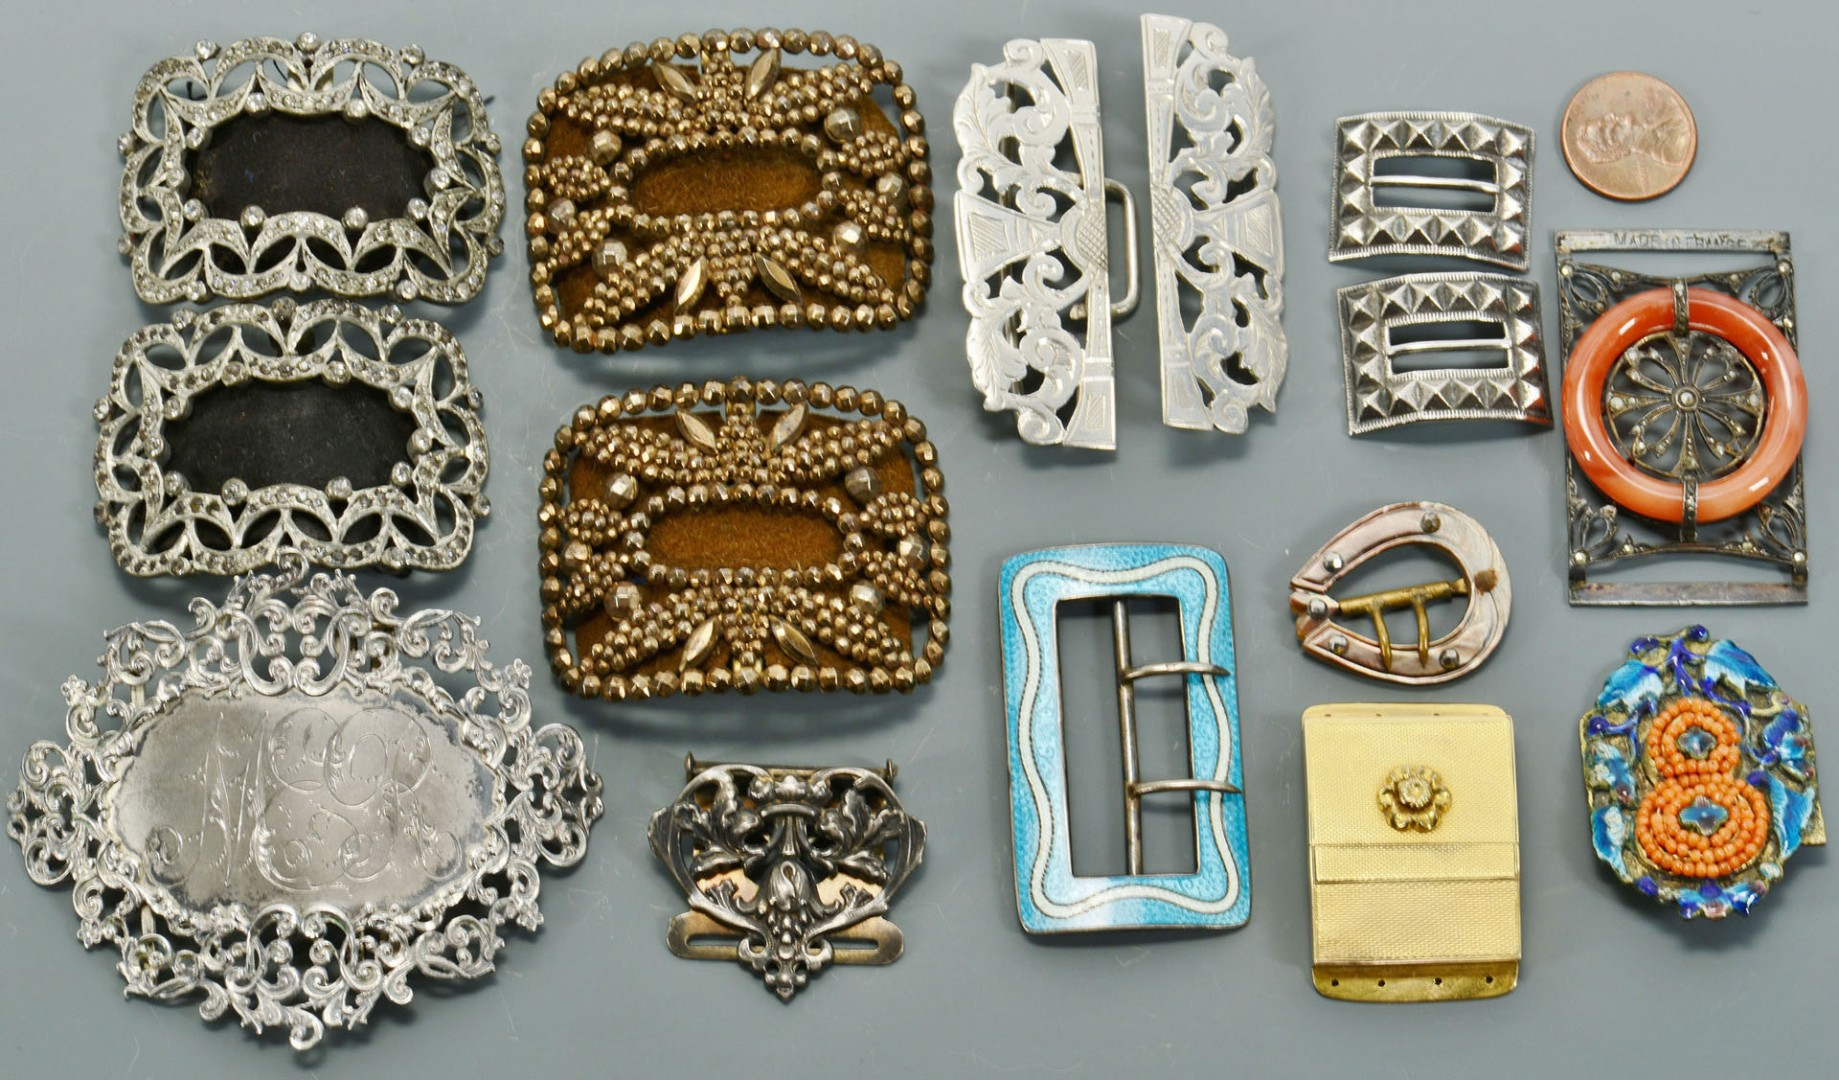 Vintage shoe and belt buckles, some sterling